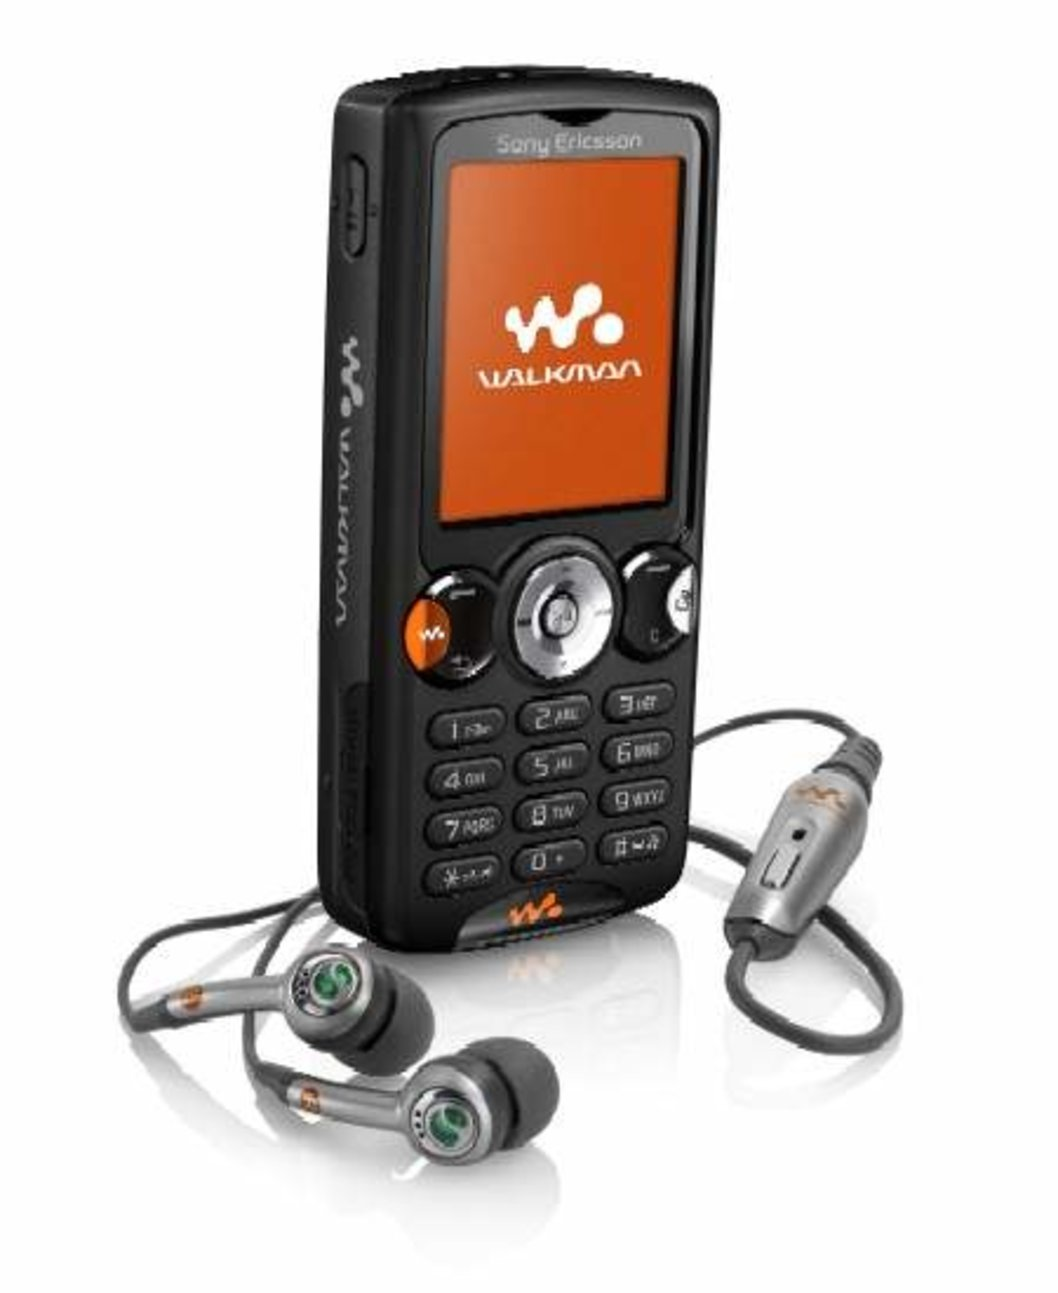 gallery sony ericsson walkman w810i mobile phone photo 1 pocket lint. Black Bedroom Furniture Sets. Home Design Ideas